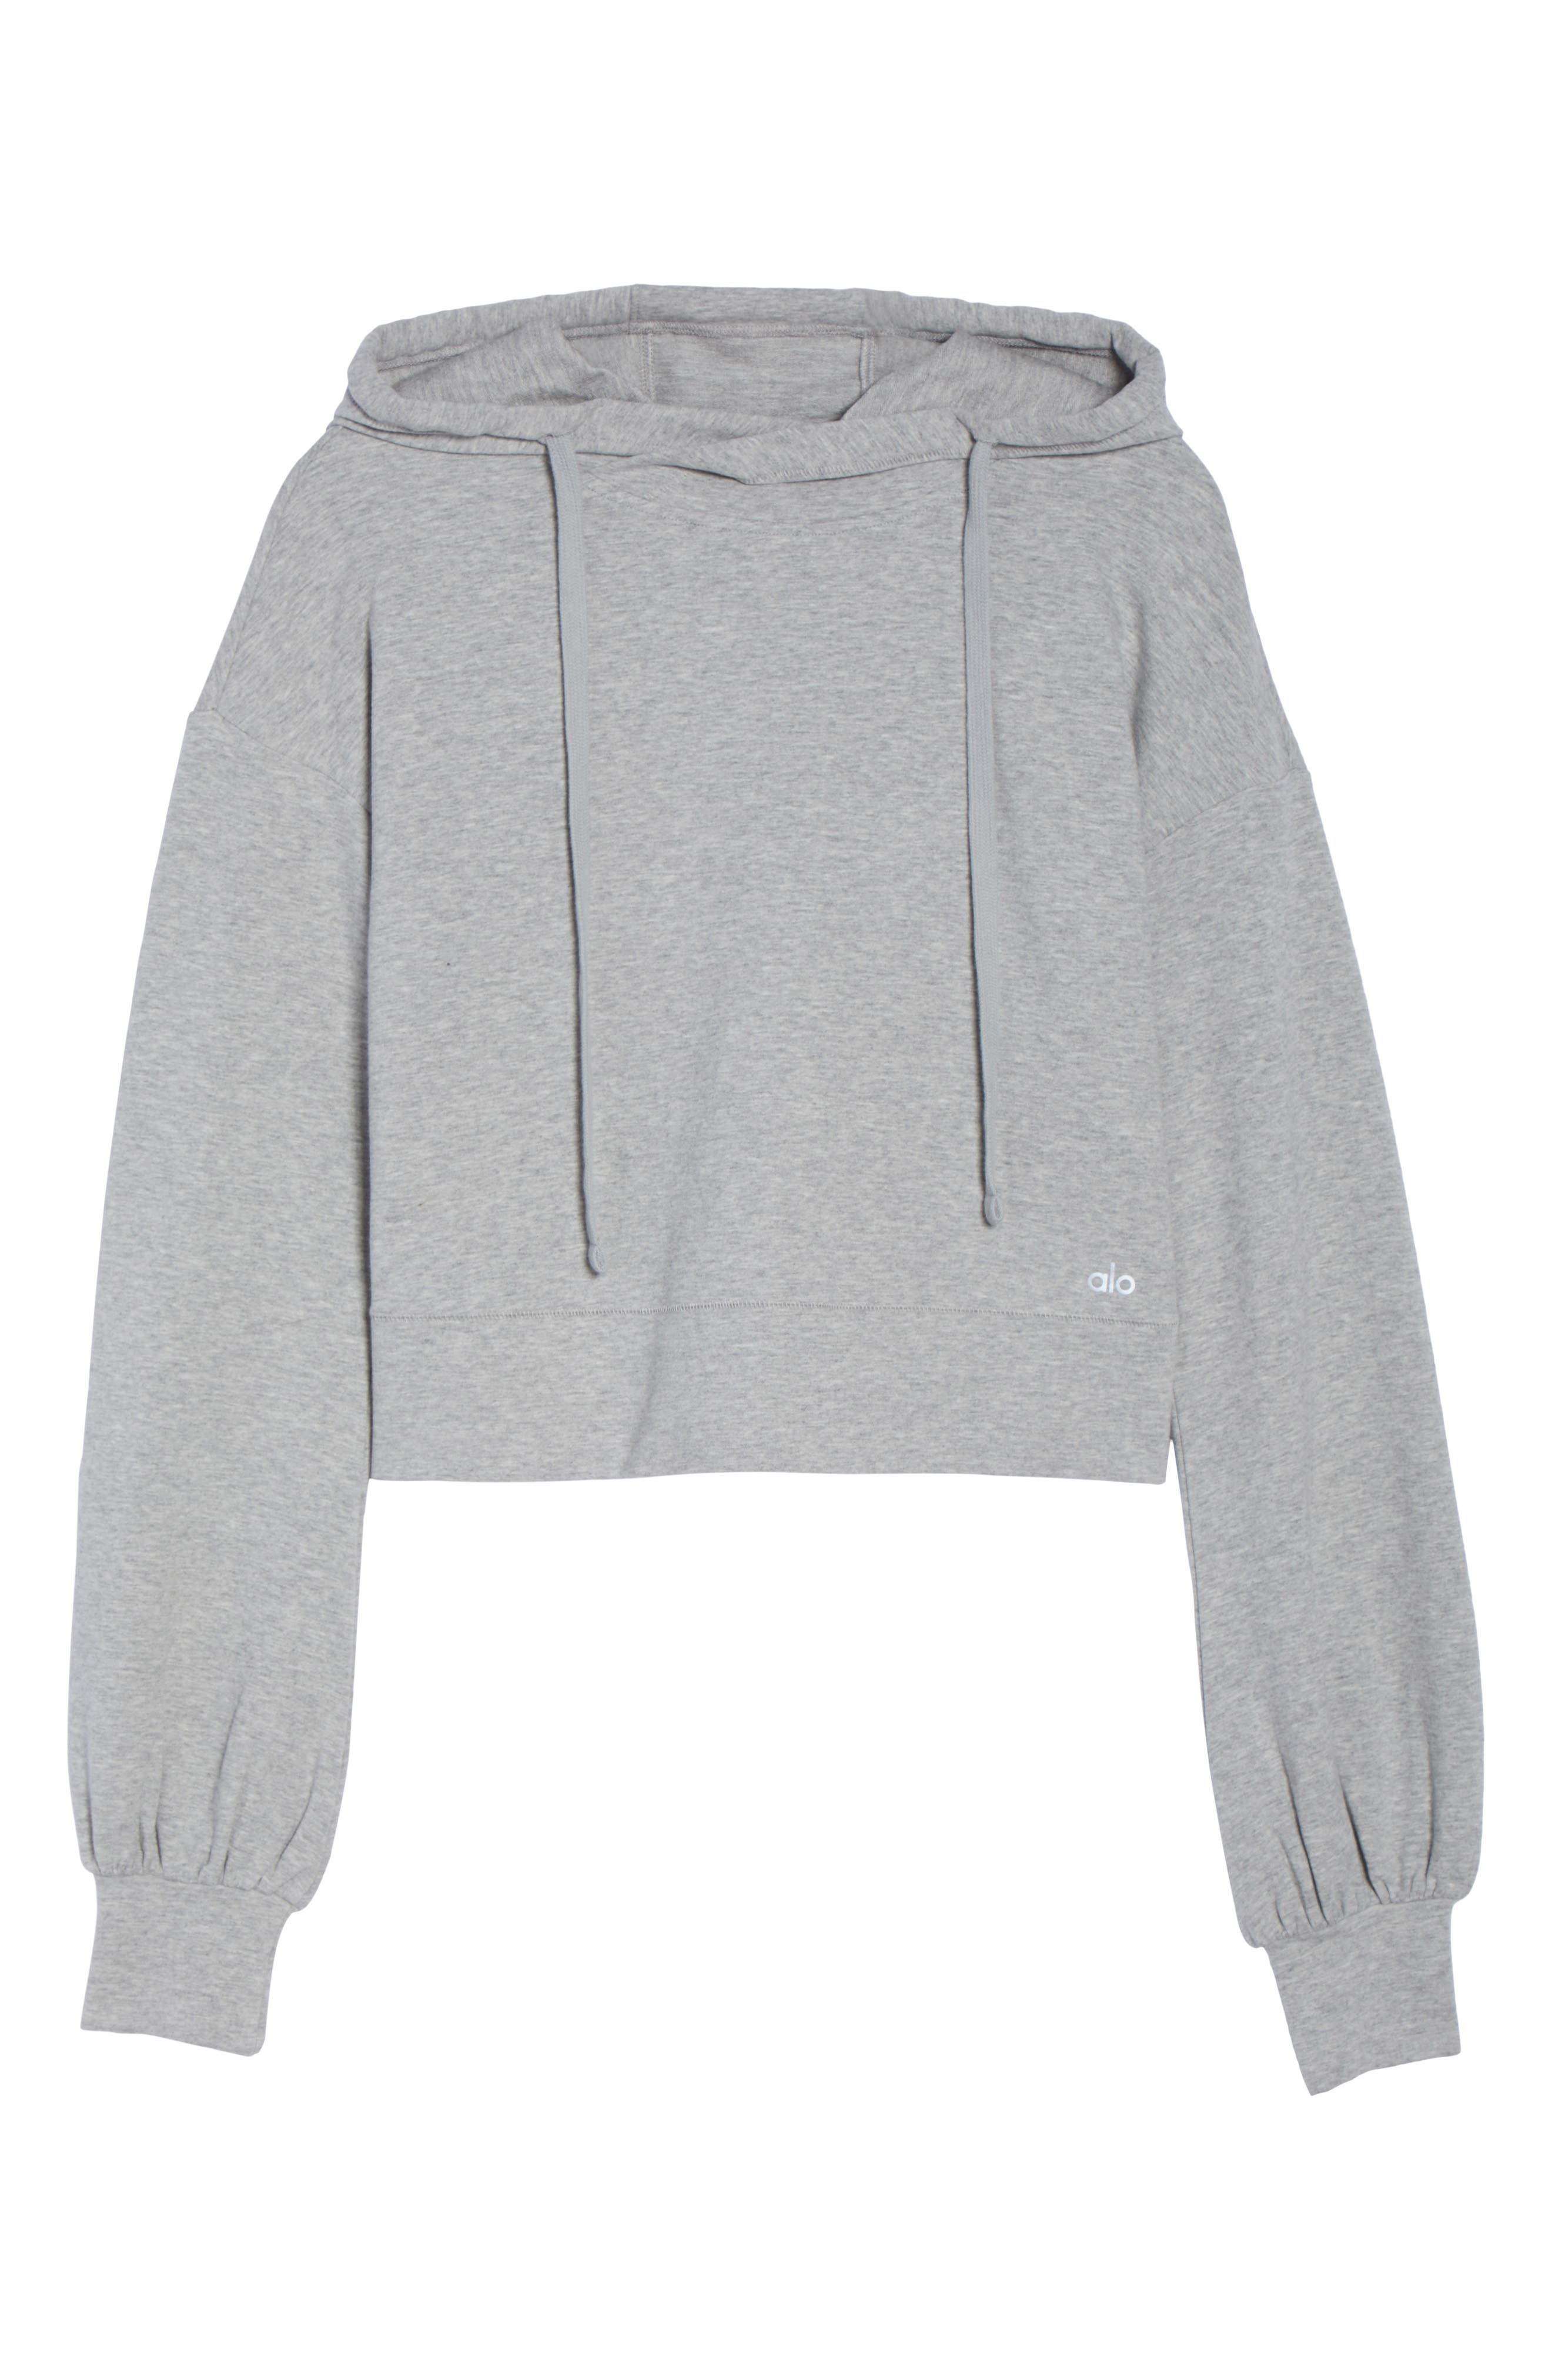 Social Hooded Top,                             Alternate thumbnail 7, color,                             Dove Grey Heather